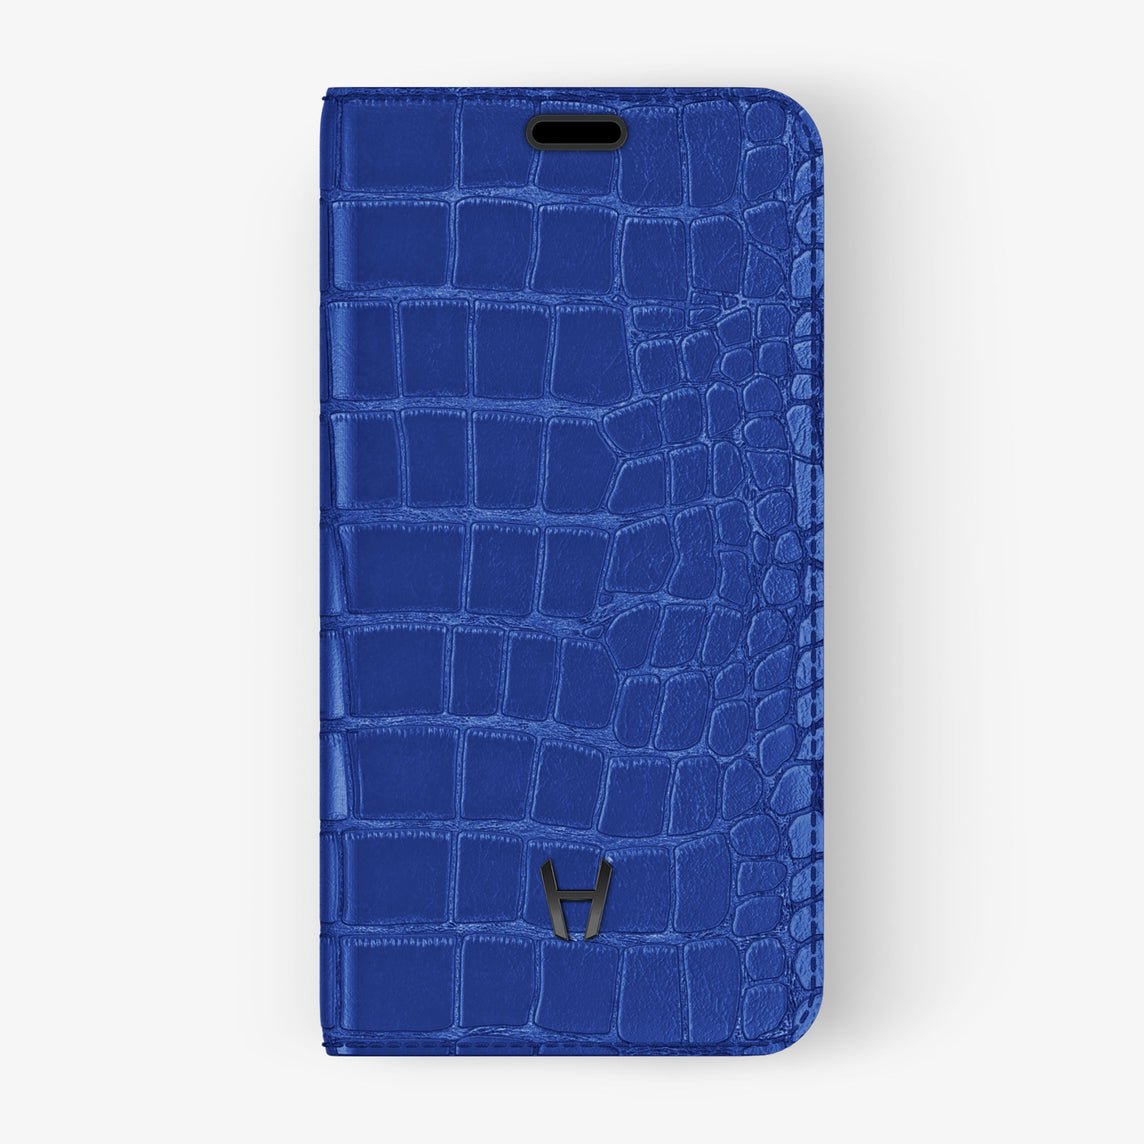 Alligator Folio Case iPhone 11 Pro Max | Peony Blue - Black